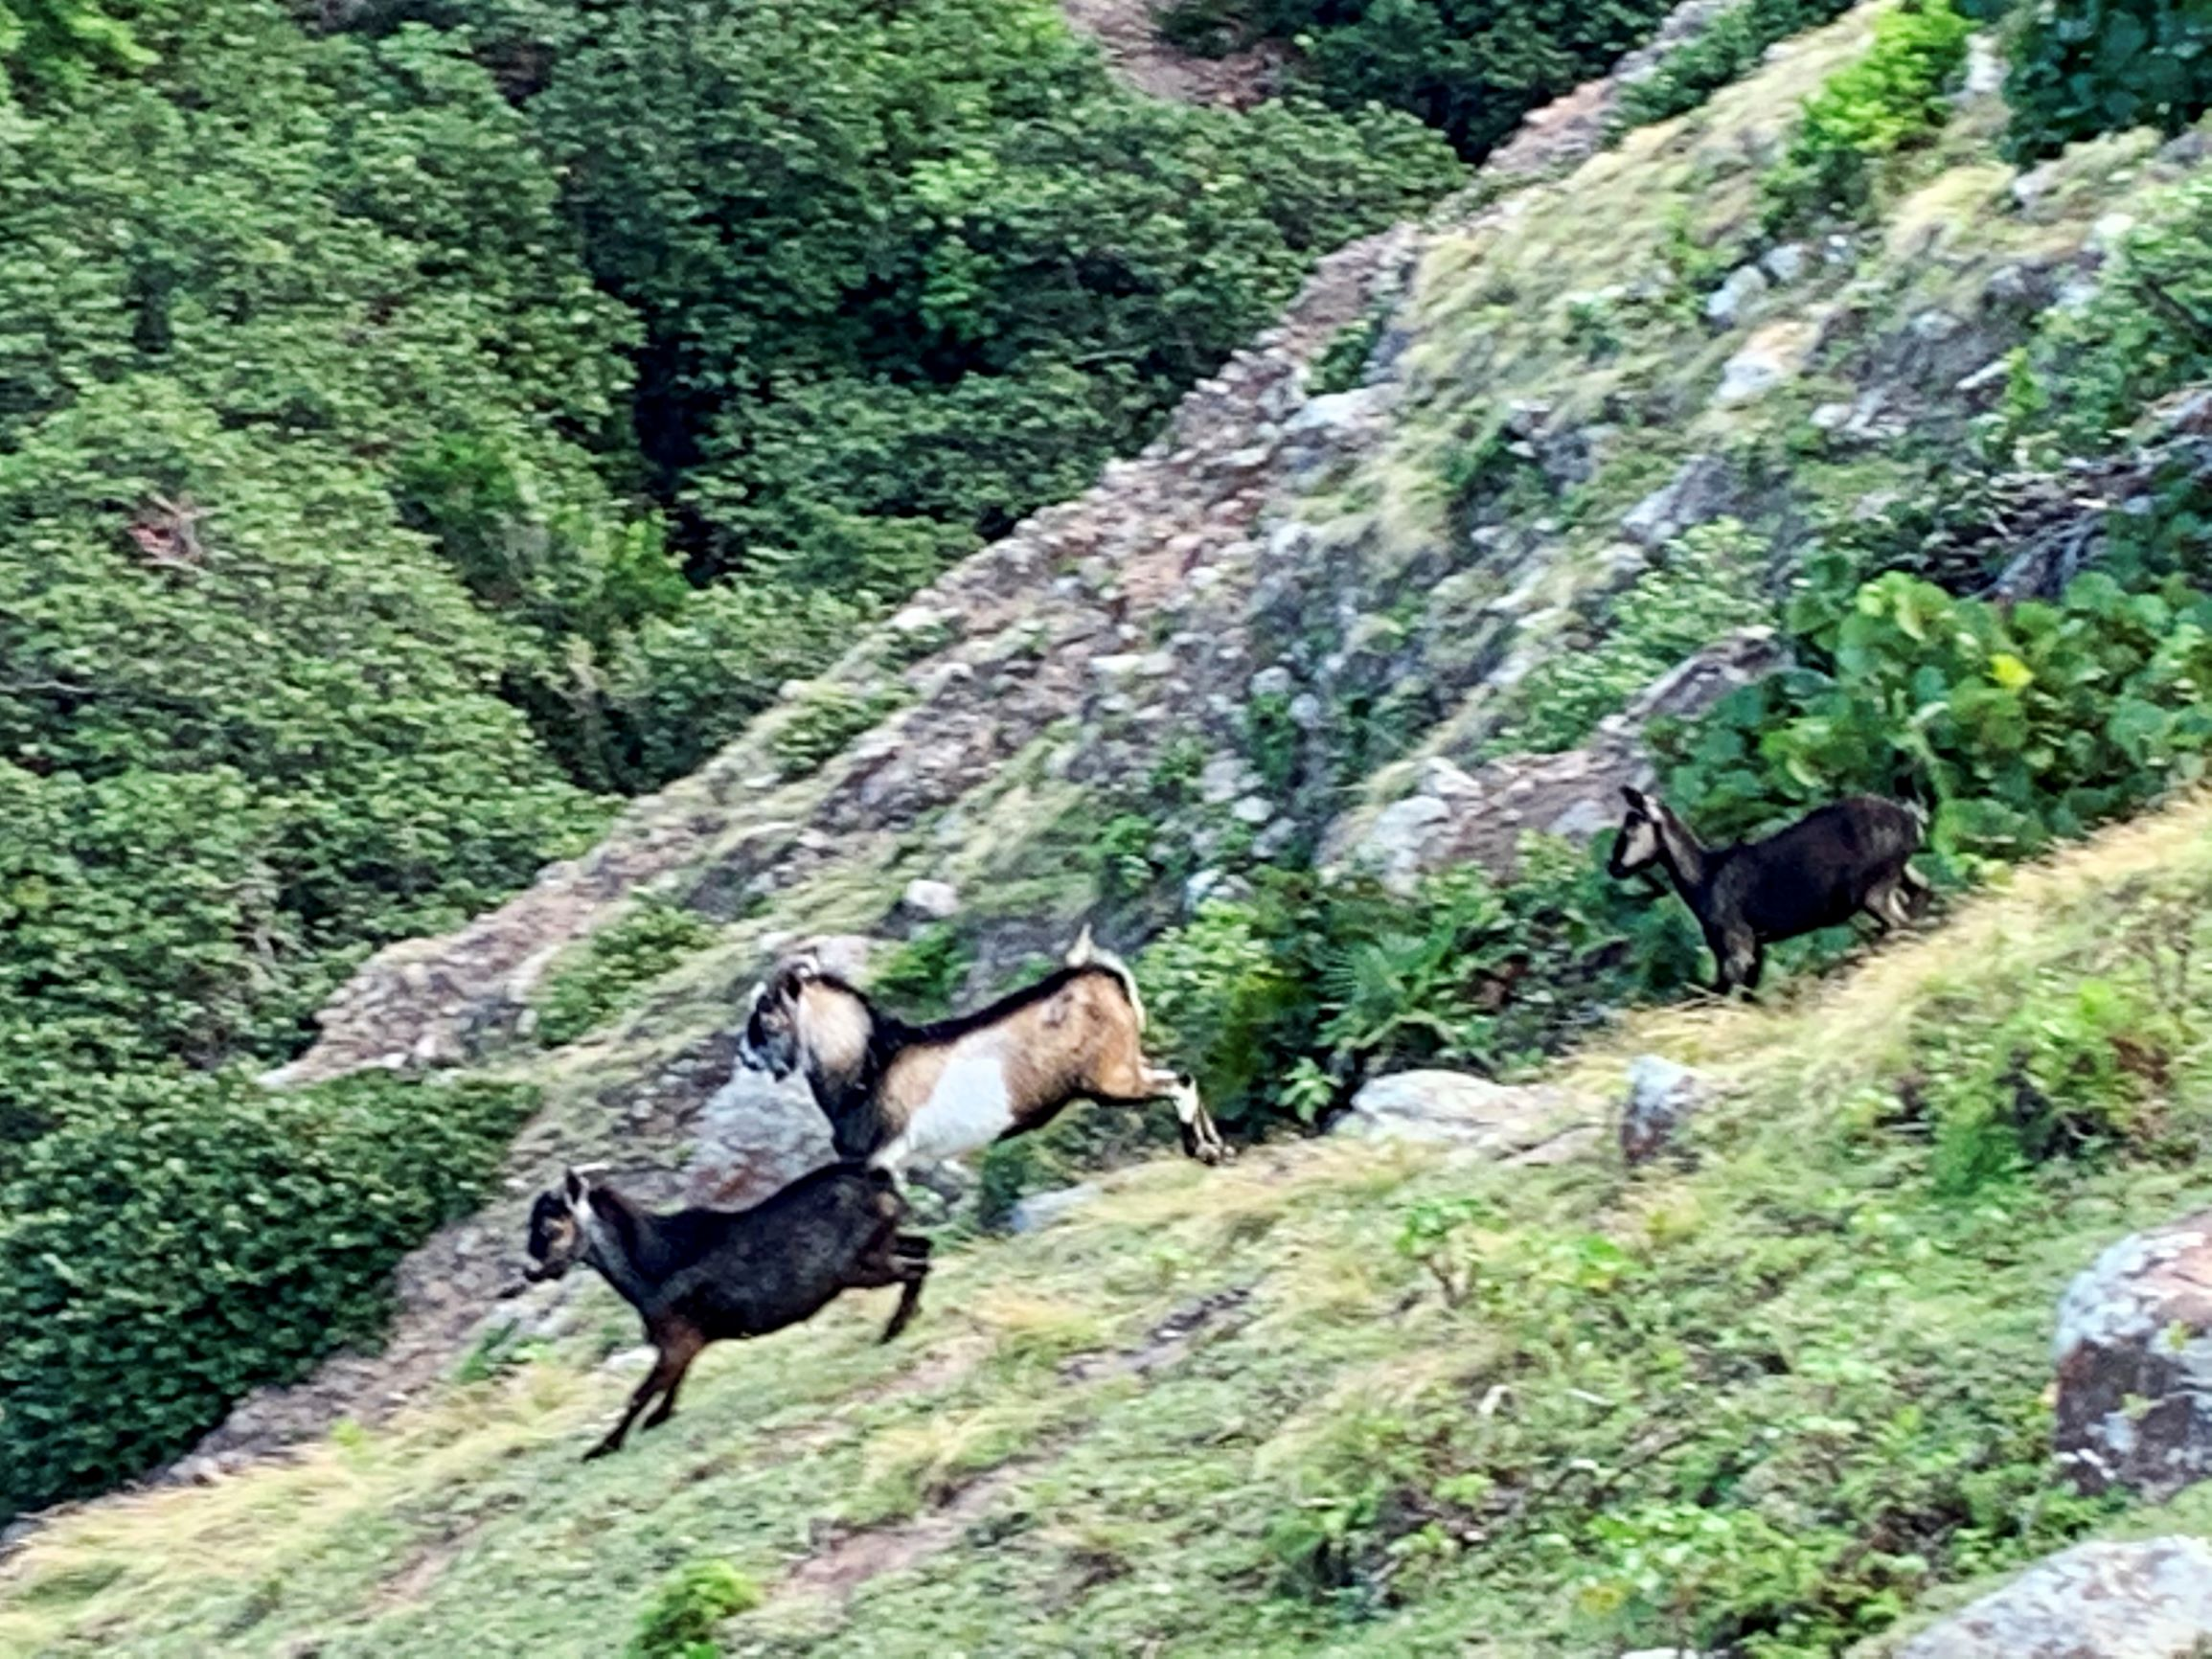 Goats in the National Park